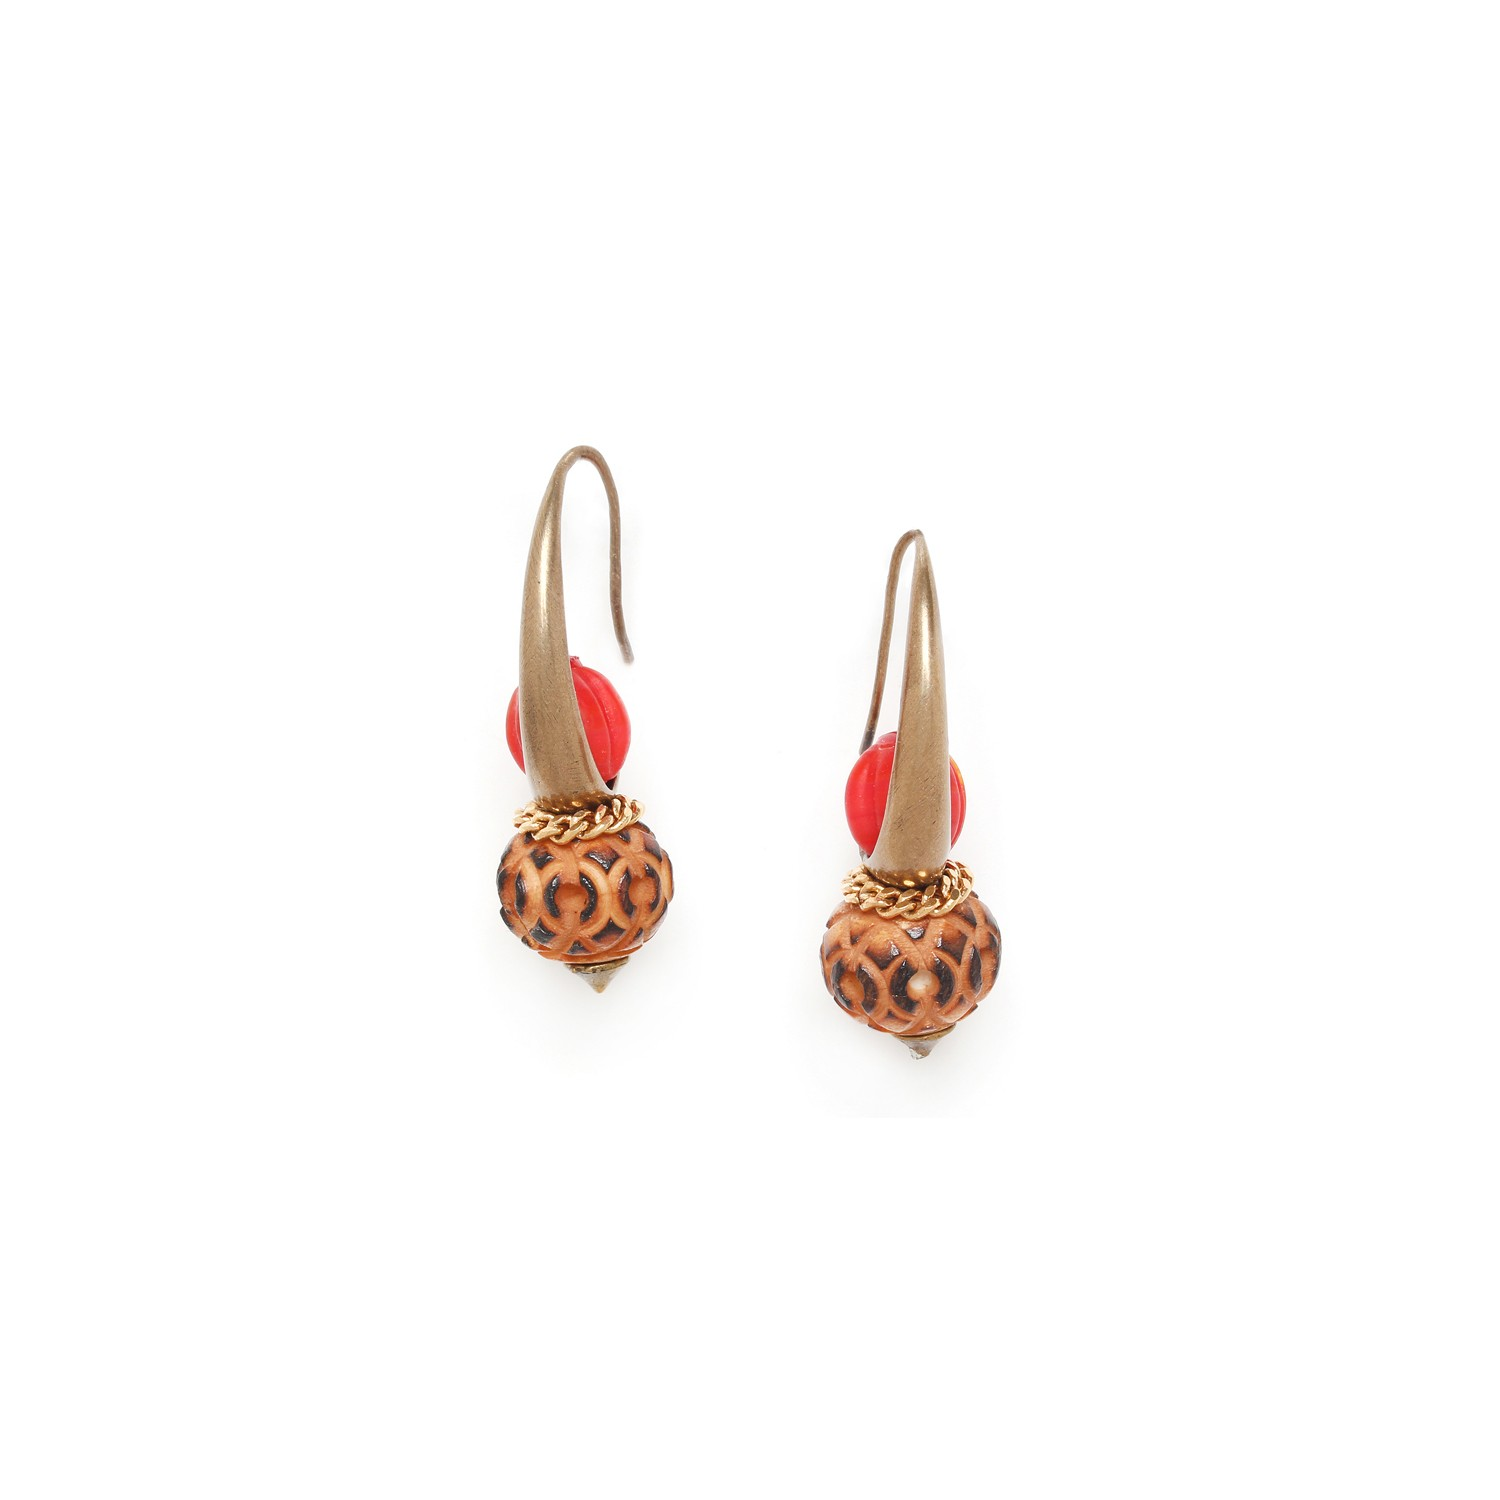 ULUWATU hook earrings